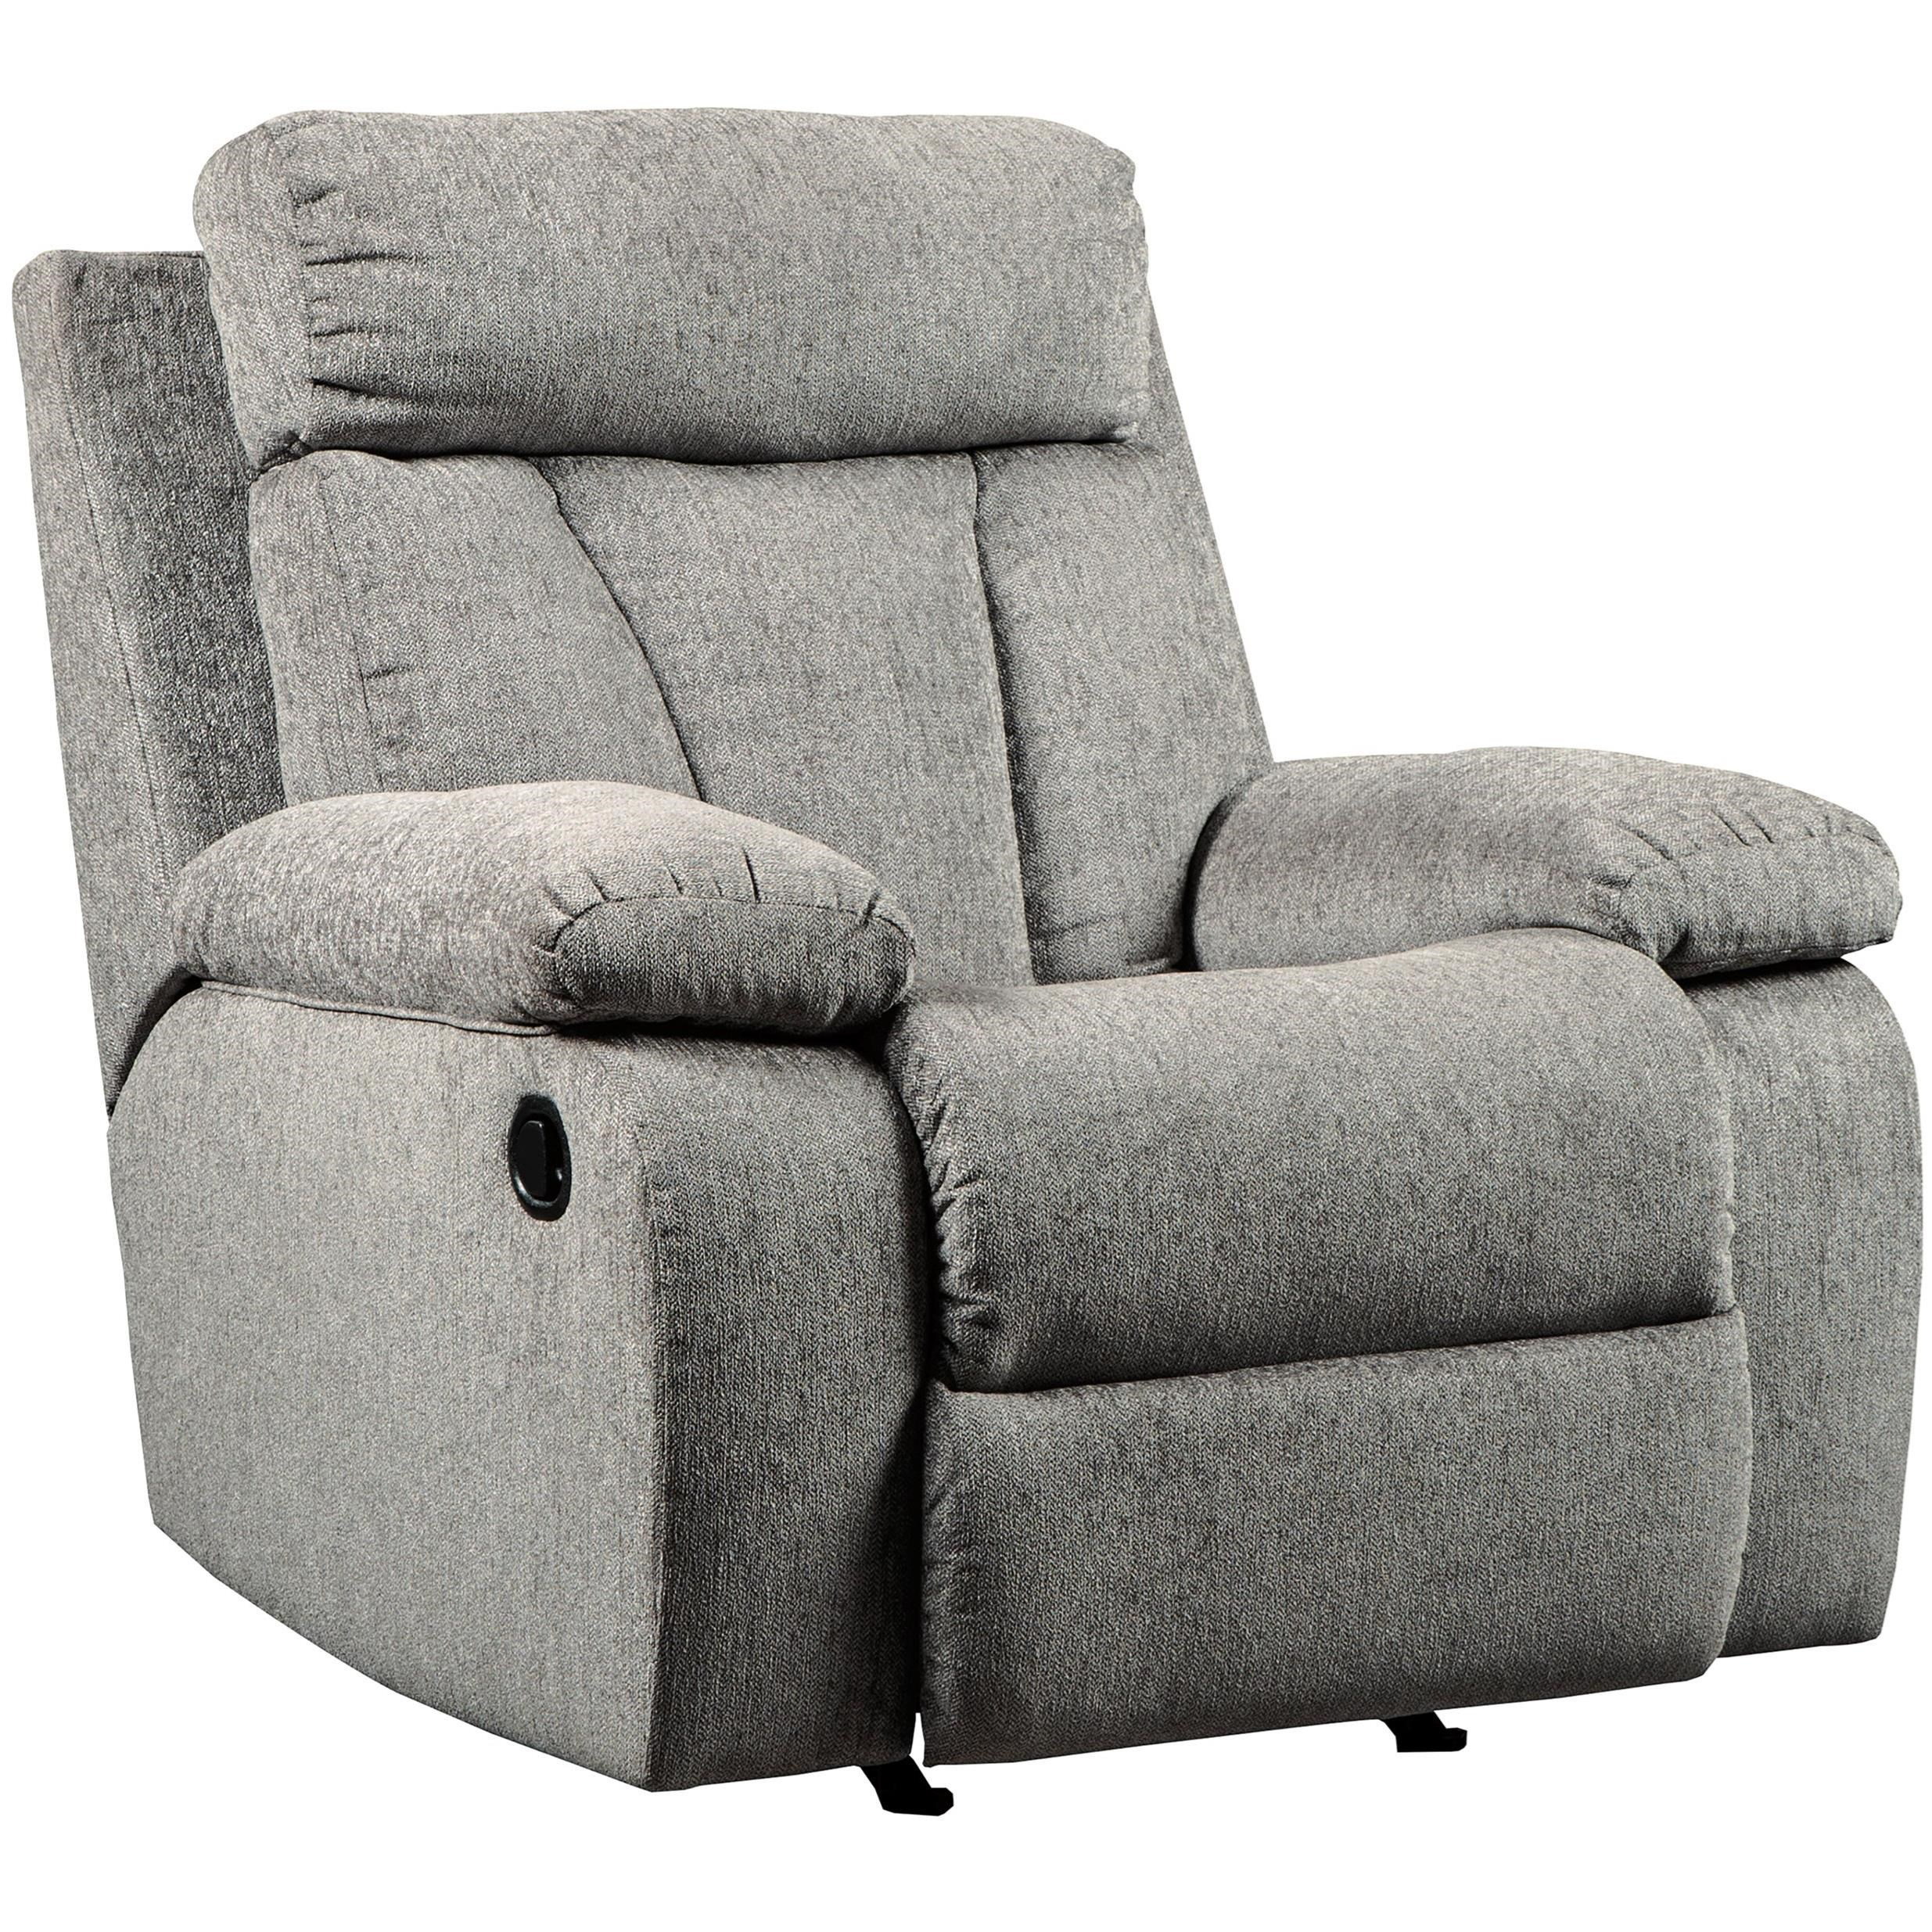 Signature Design by Ashley Mitchiner Rocker Recliner - Item Number: 7620425